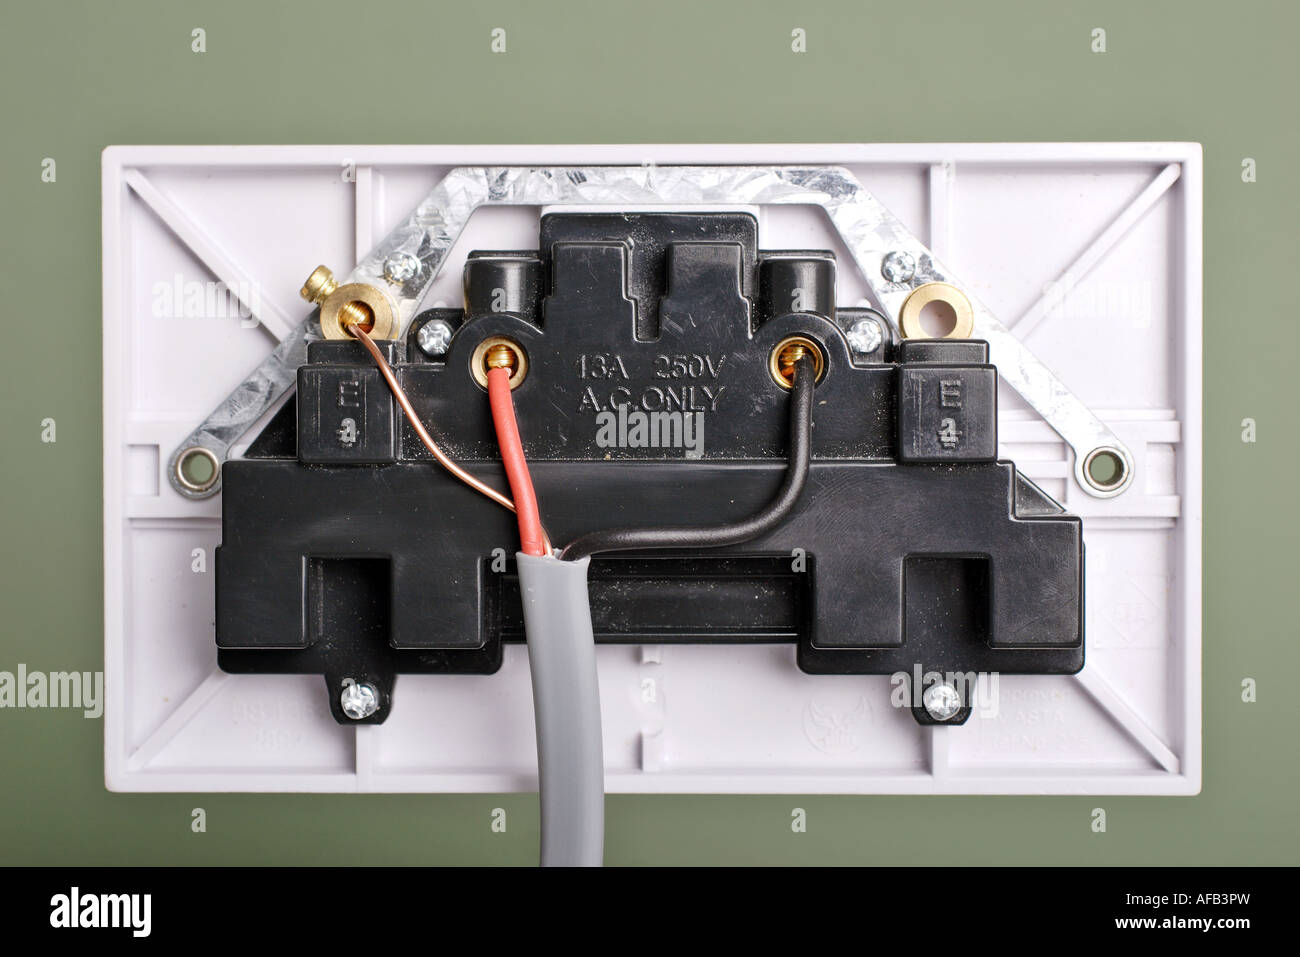 Rear View Of 3 Pin Electrical Socket Wiring